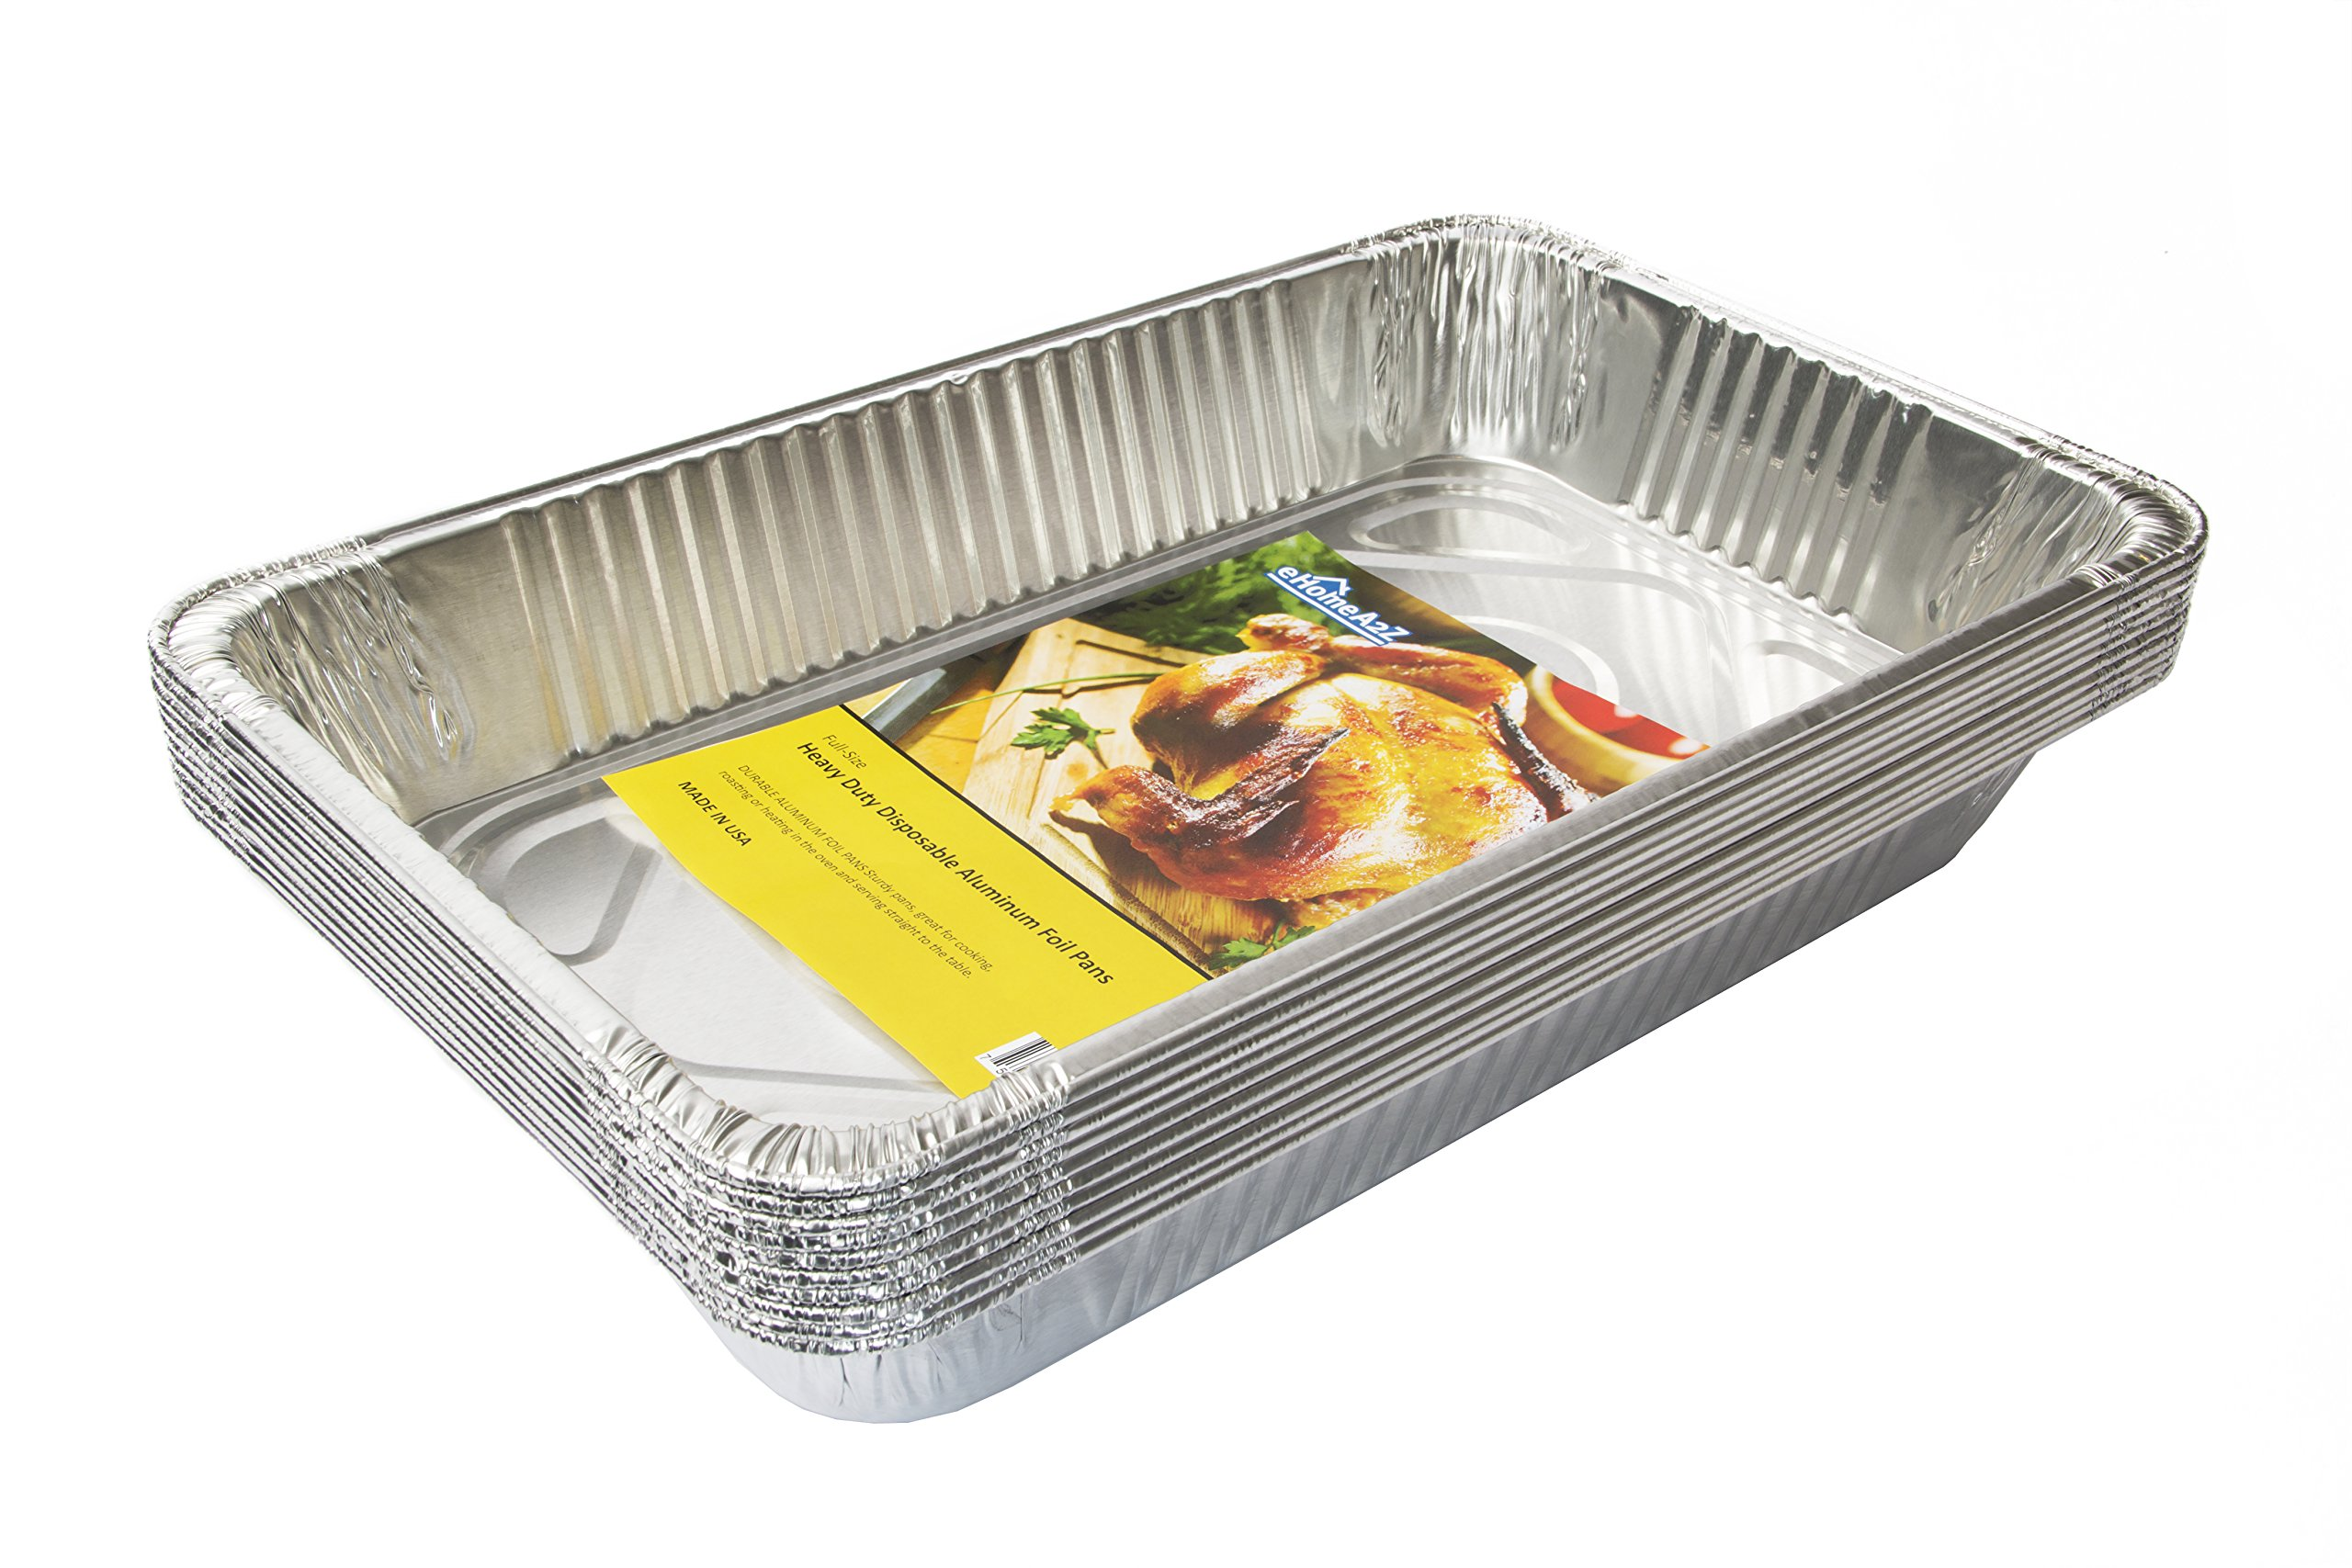 eHomeA2Z Aluminum Pans Full Size Disposable - 21 x 13 x 3 (10, Full-Size) (10)